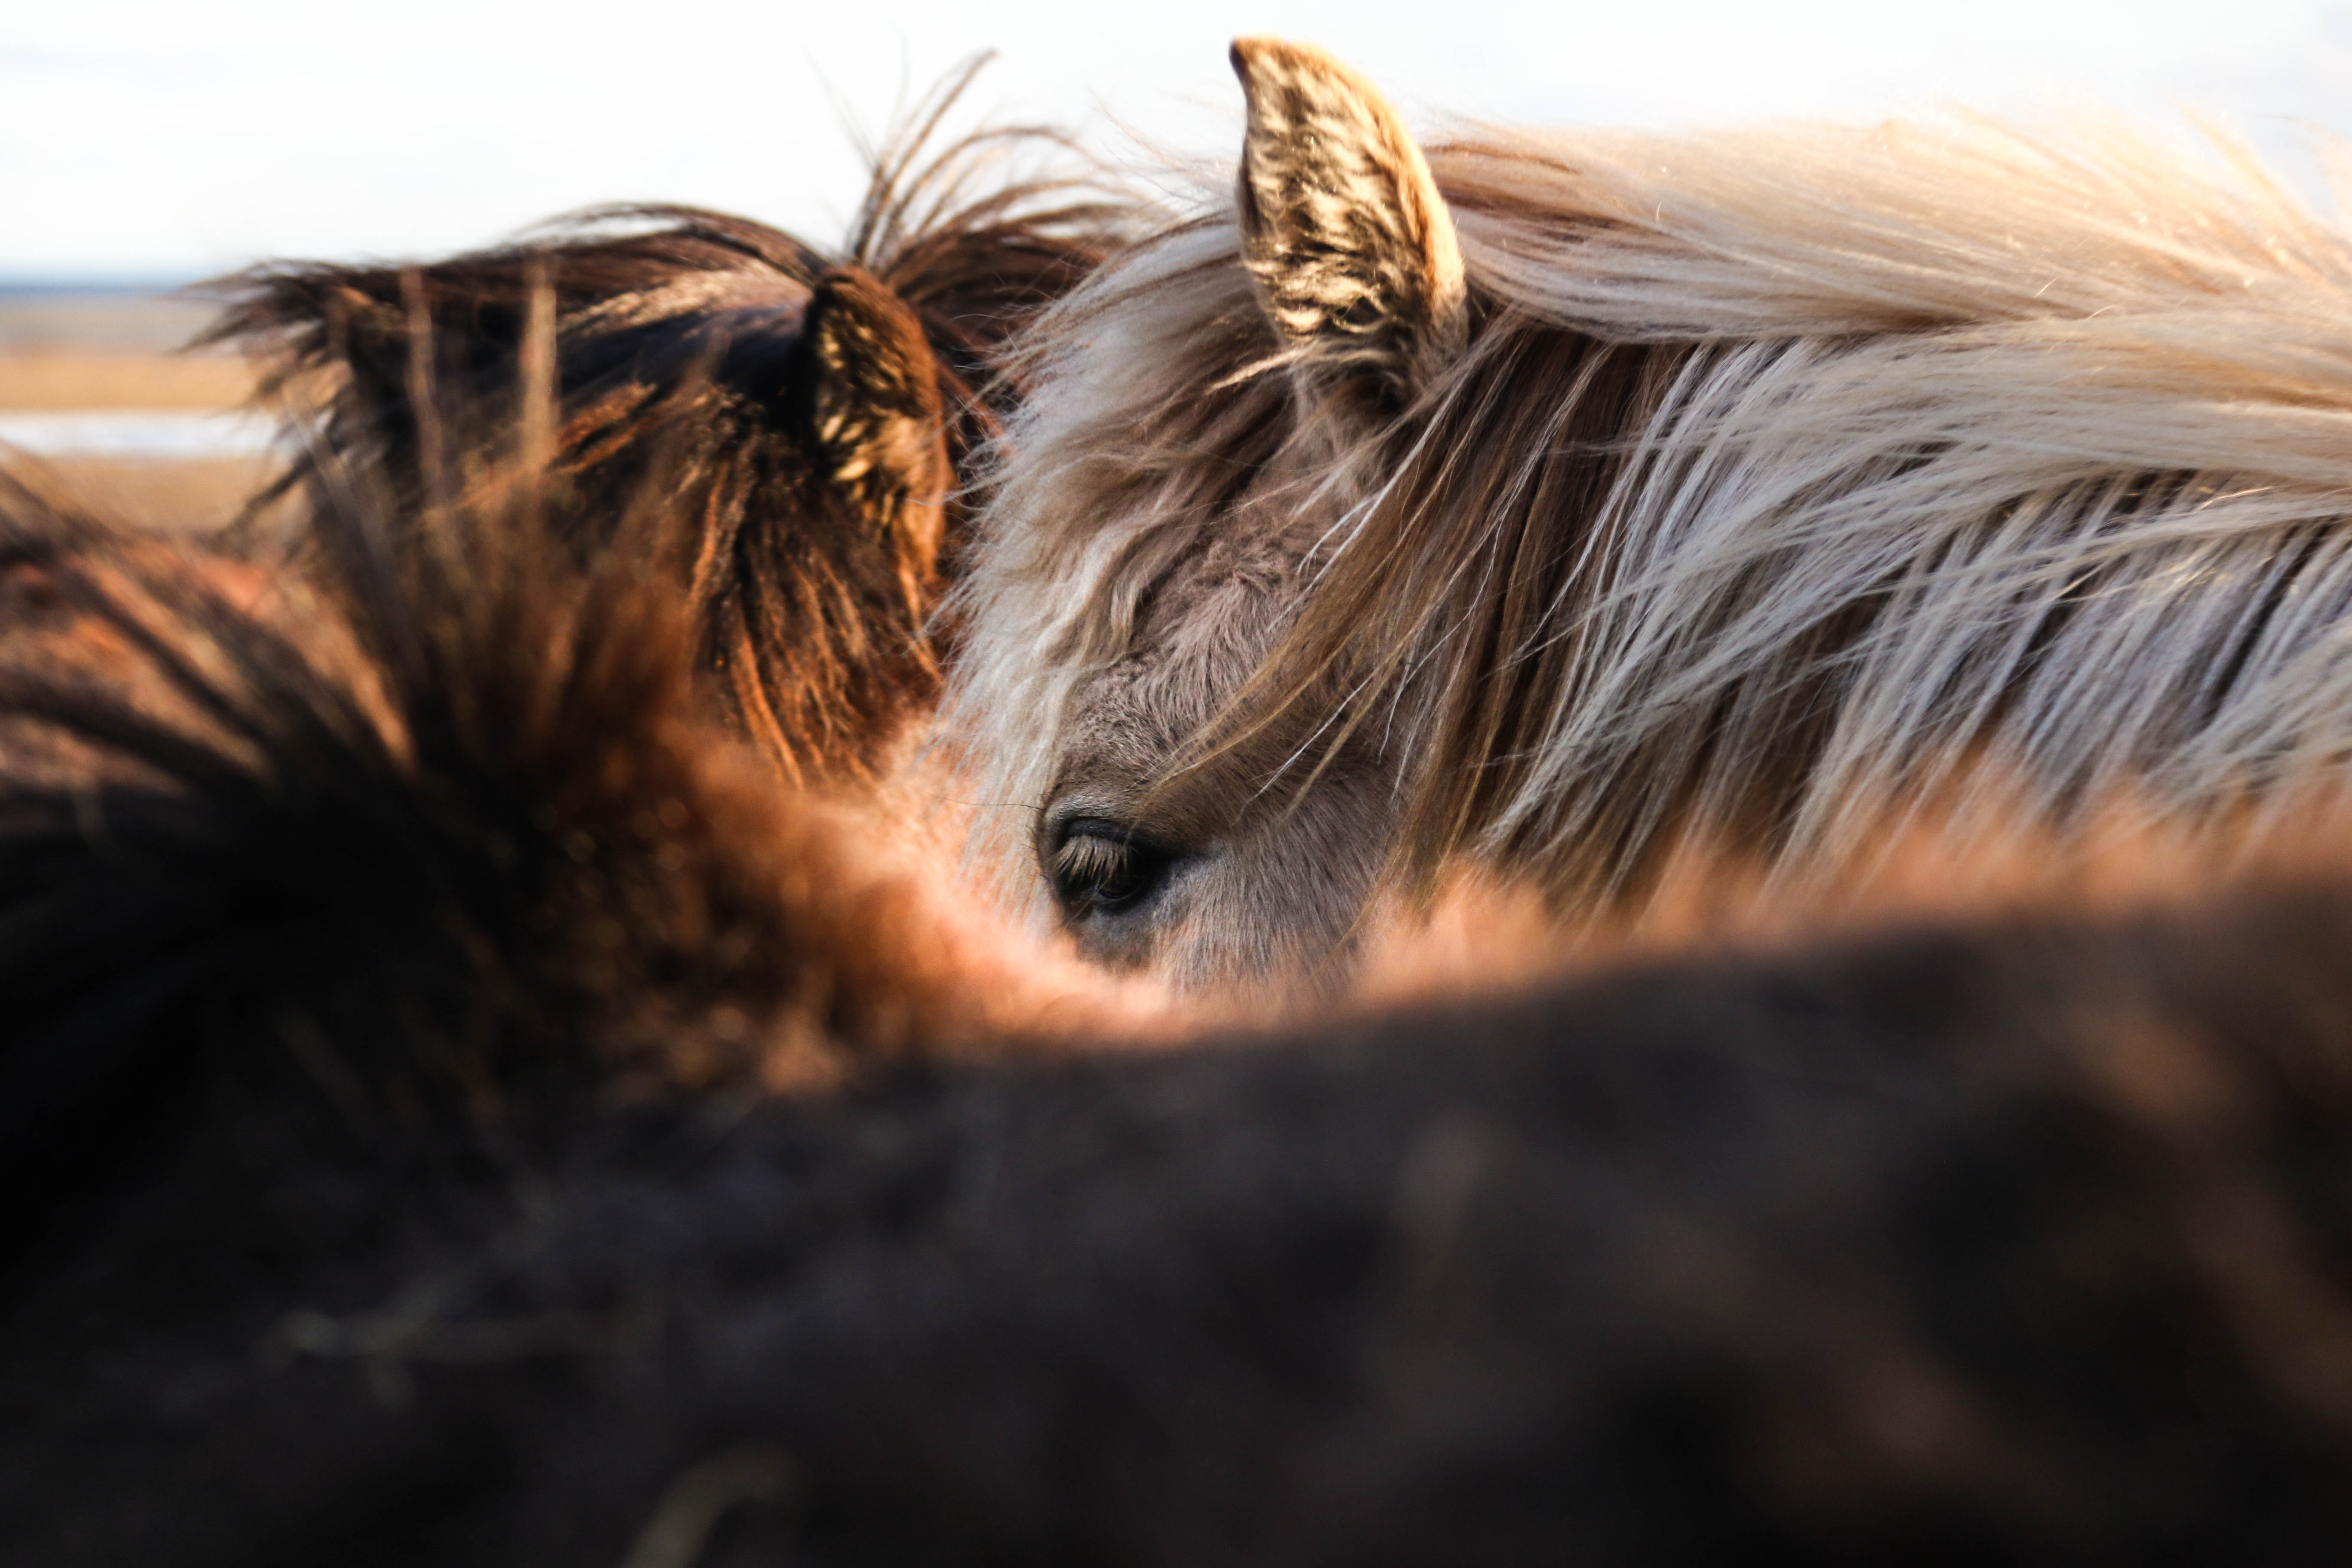 Close-up of several ponies nuzzling together